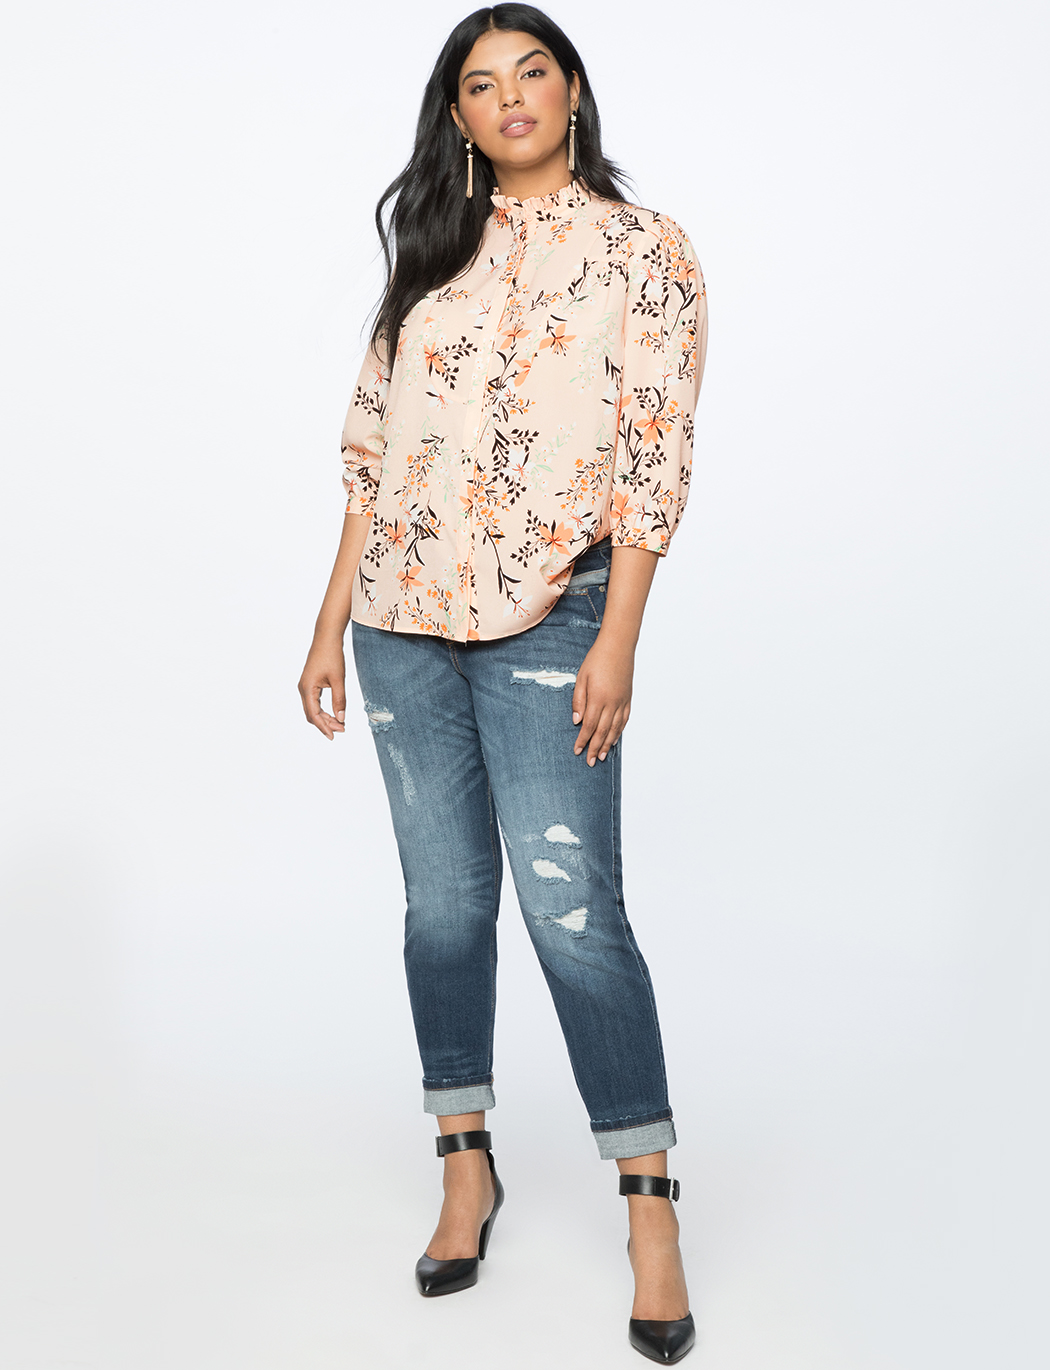 Bib Front Blouse with Ruffle Neckline